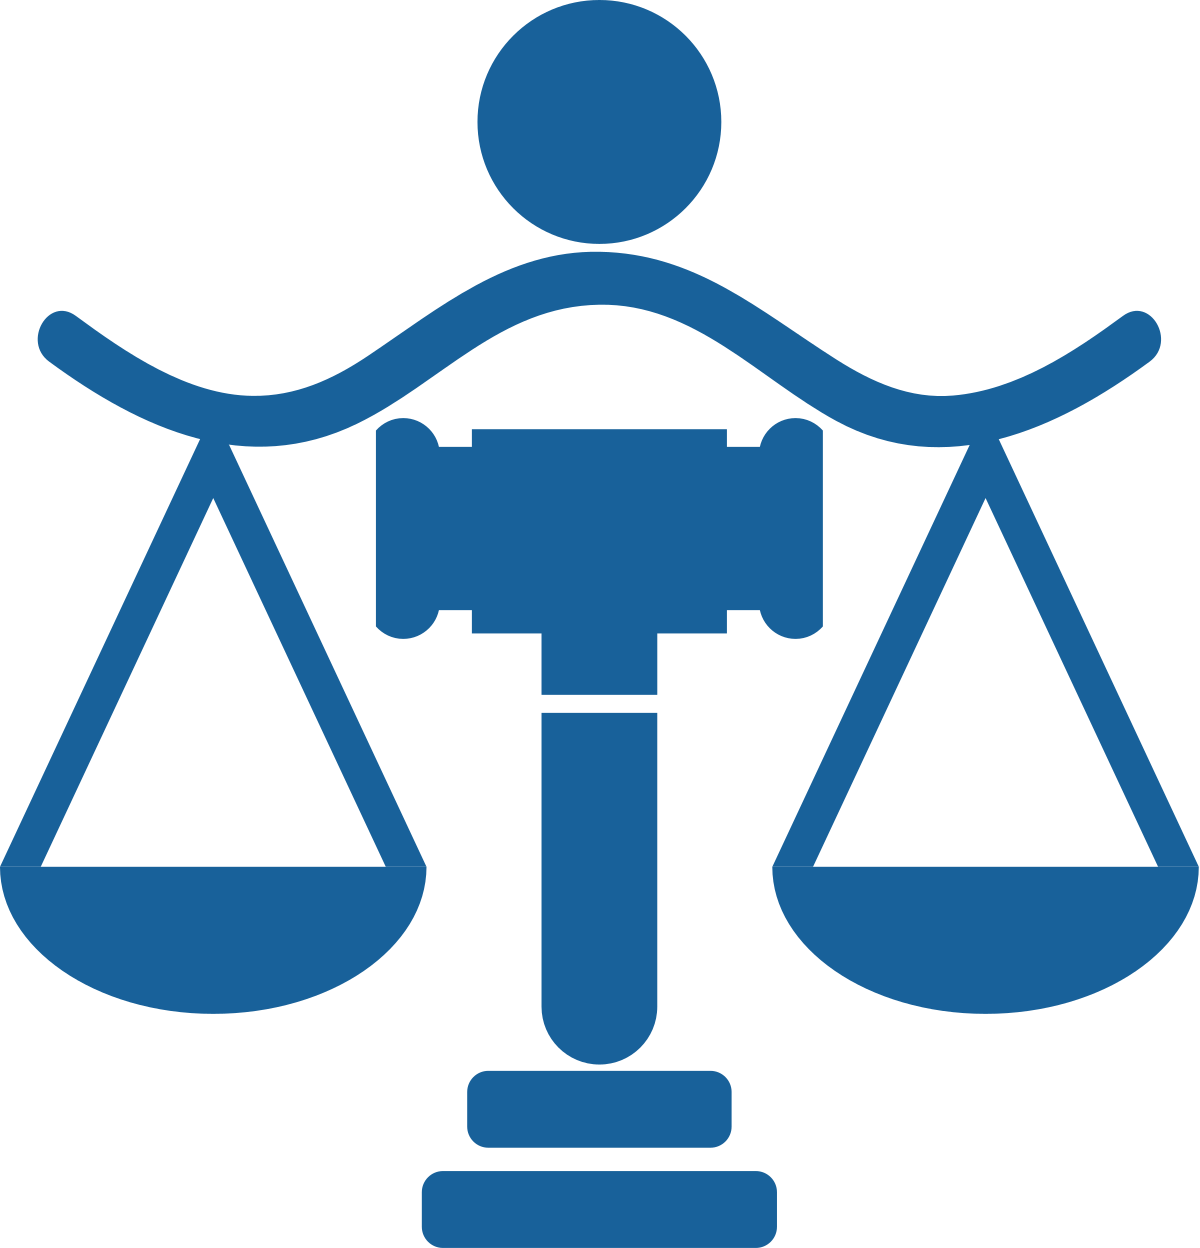 Judge clipart judicial power. Free download best on